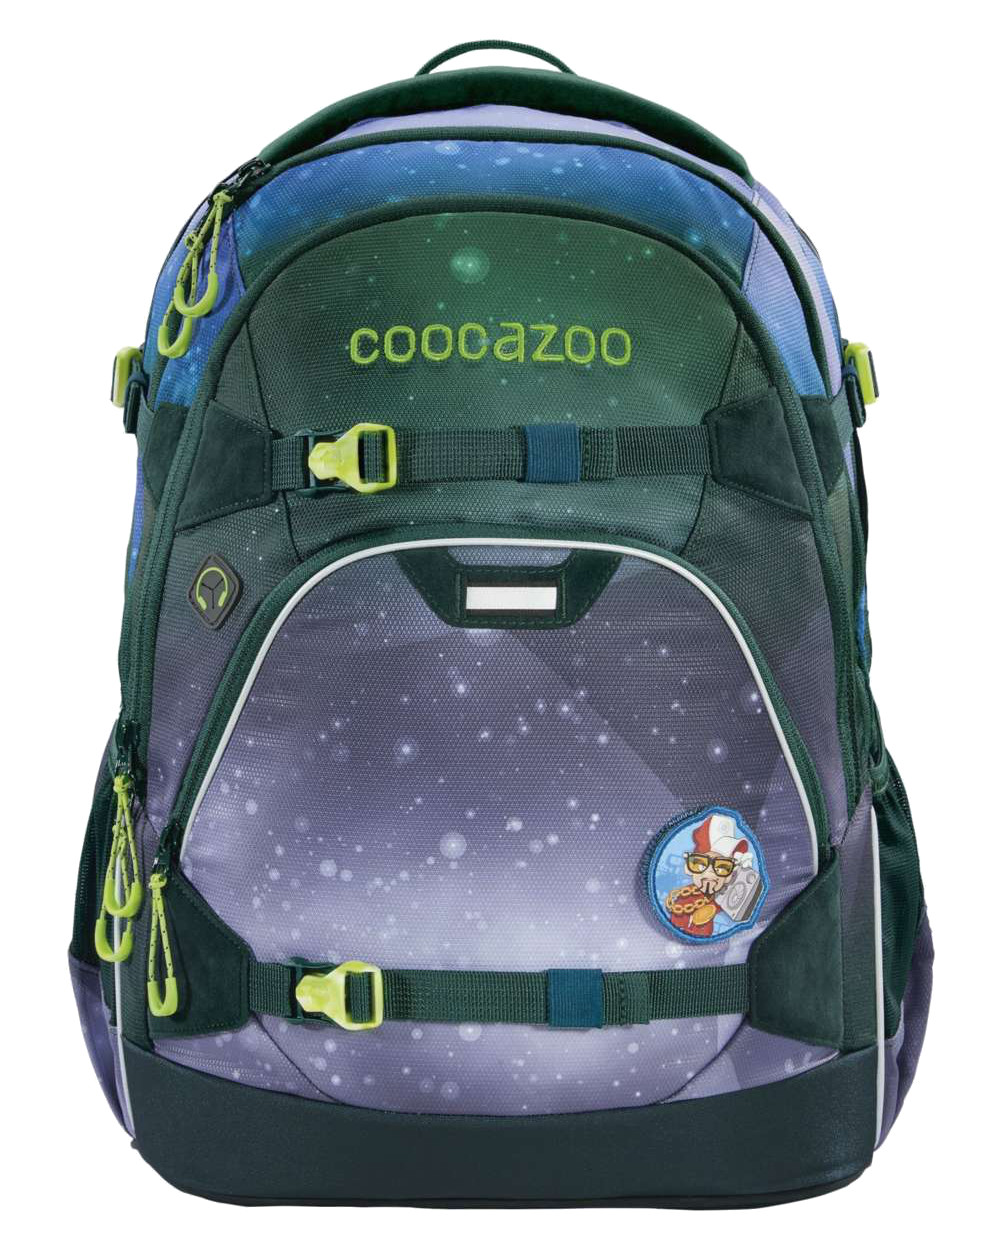 Coocazoo 'ScaleRale' Schulrucksack Limited Edition 1,2kg 30l OceanEmotion galaxy blue